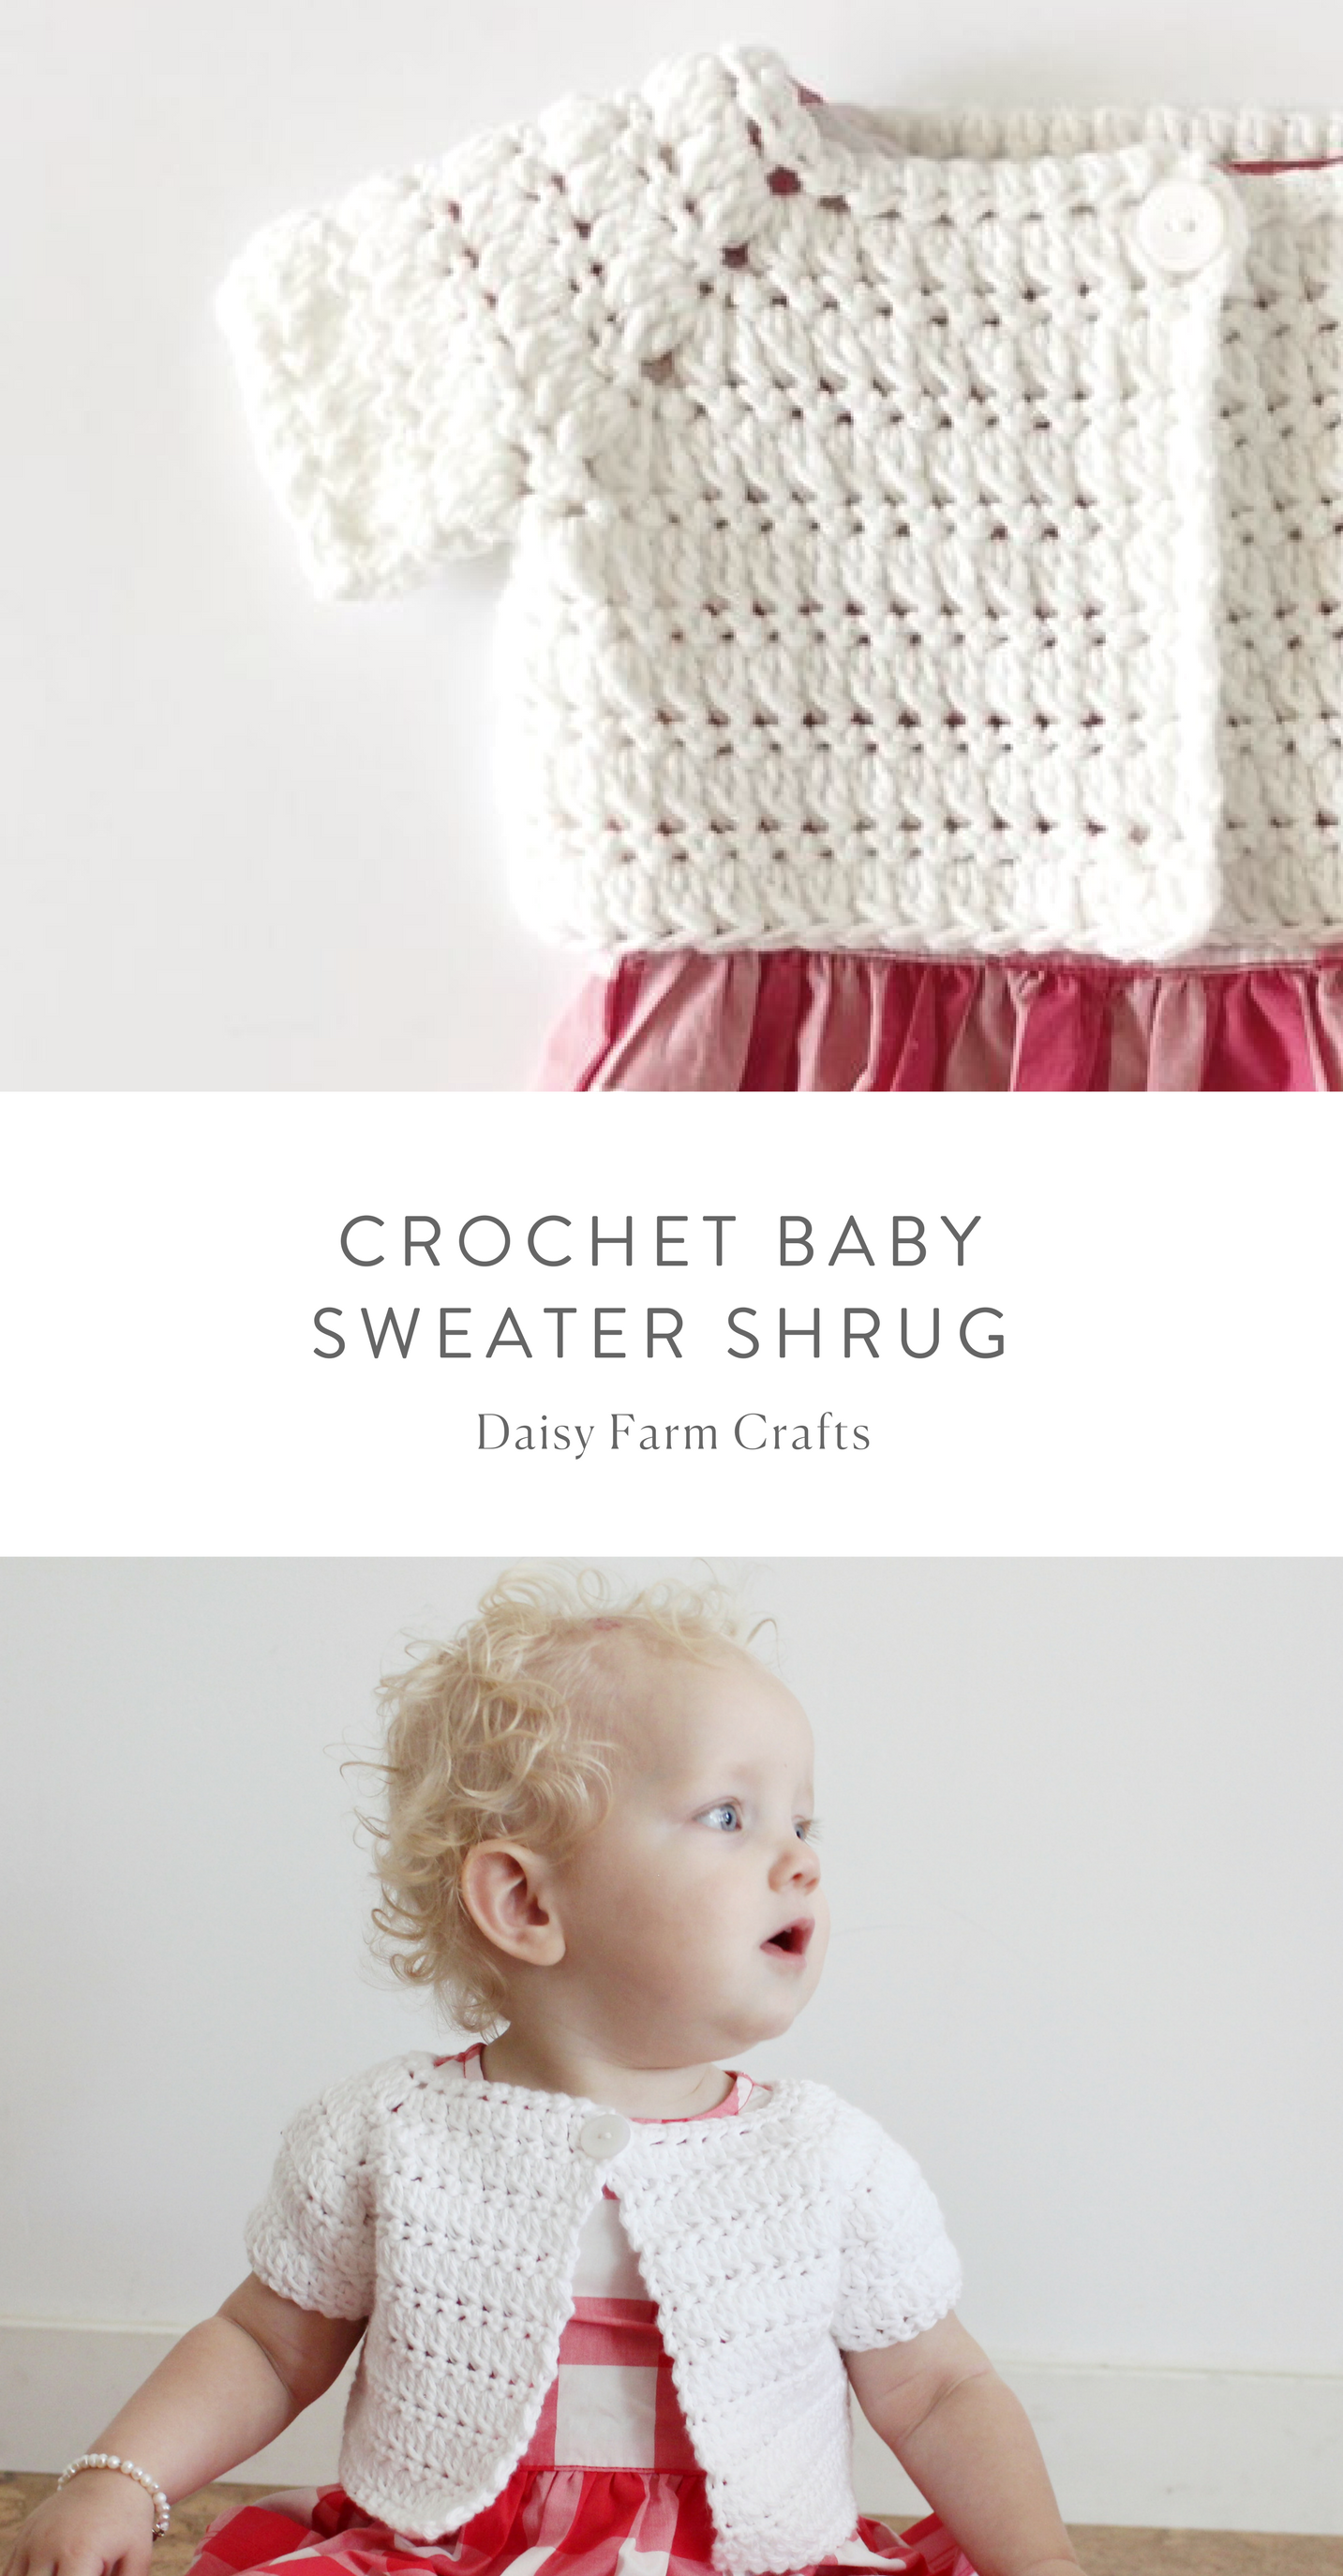 Free Pattern - Crochet Baby Sweater Shrug | Free crochet Patterns ...